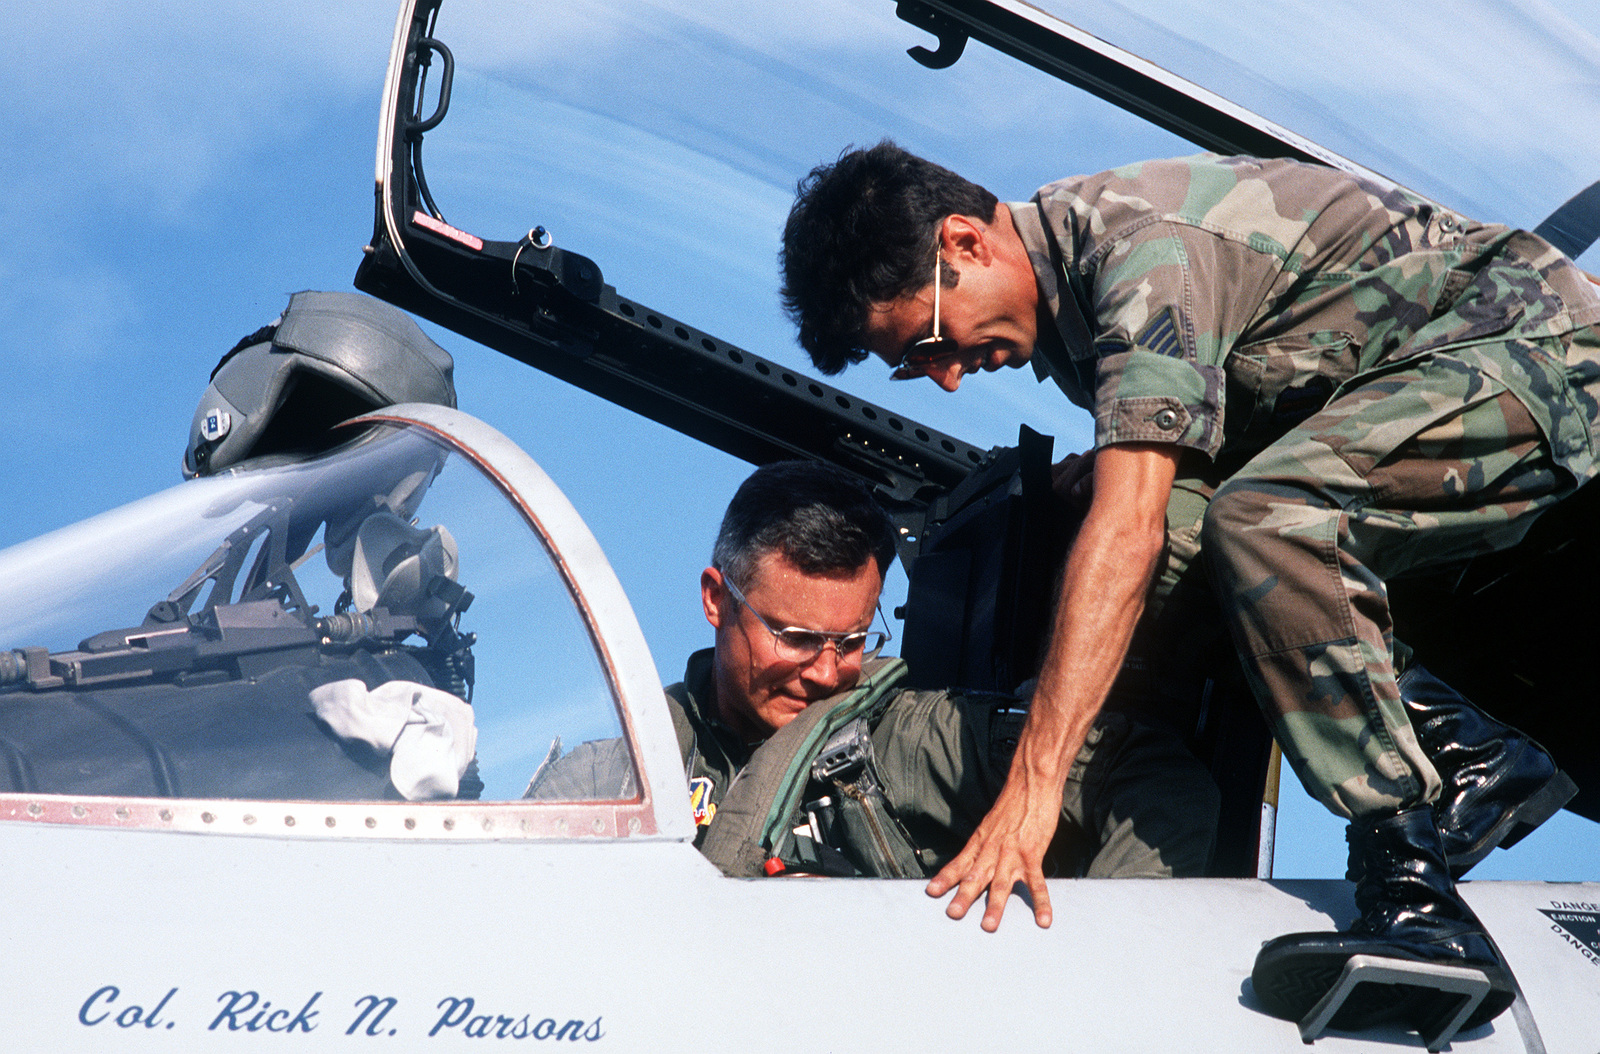 COL. Rick N. Parsons, commander, 33rd Tactical Fighter Wing, secures a safety belt in the cockpit of his F-15C Eagle aircraft as he prepares to deploy to the Middle East in support of Operation Desert Shield